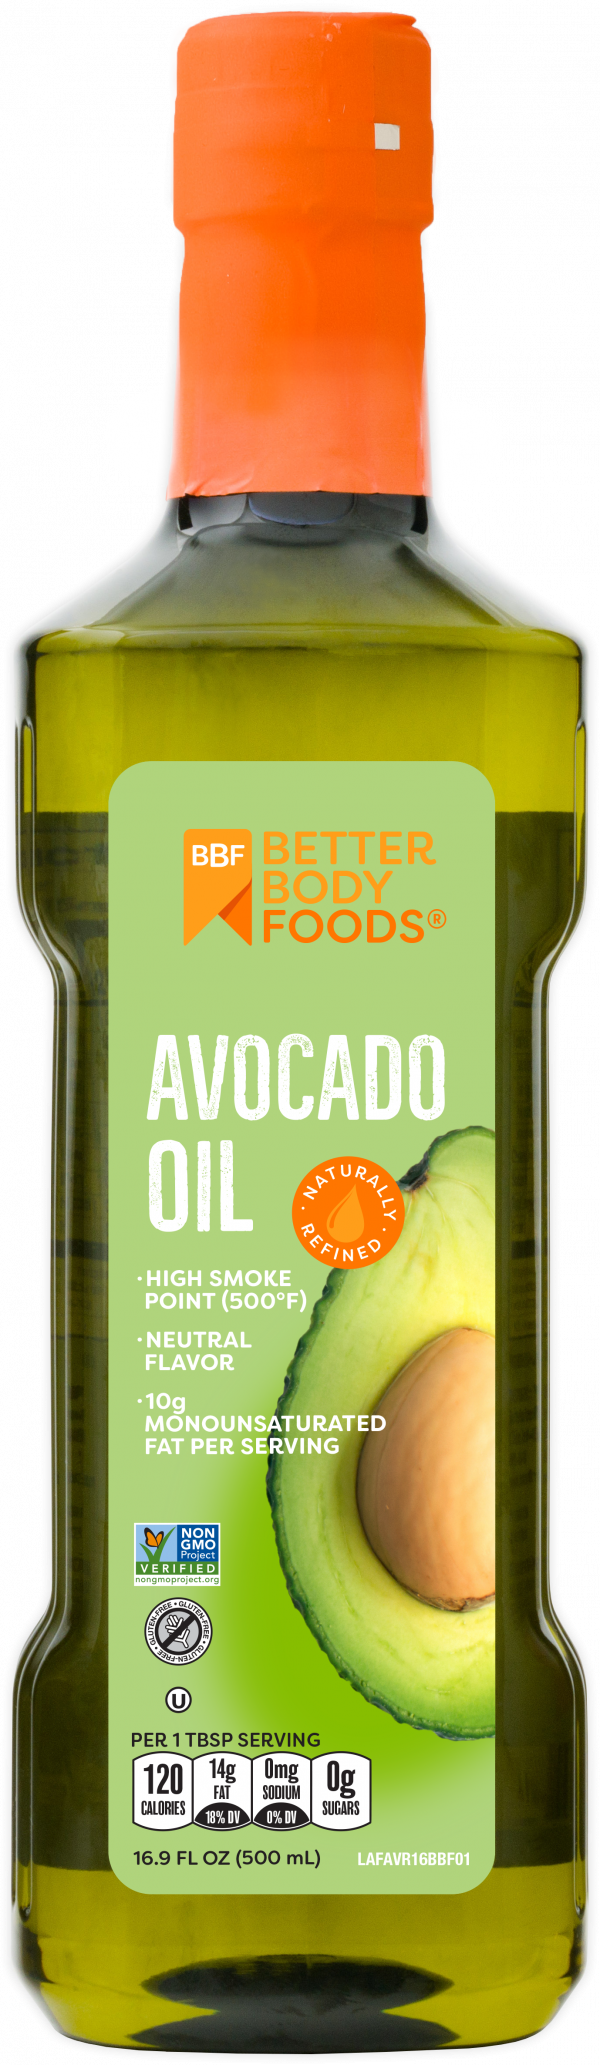 high smoke point avocado oil for cooking | betterbody foods